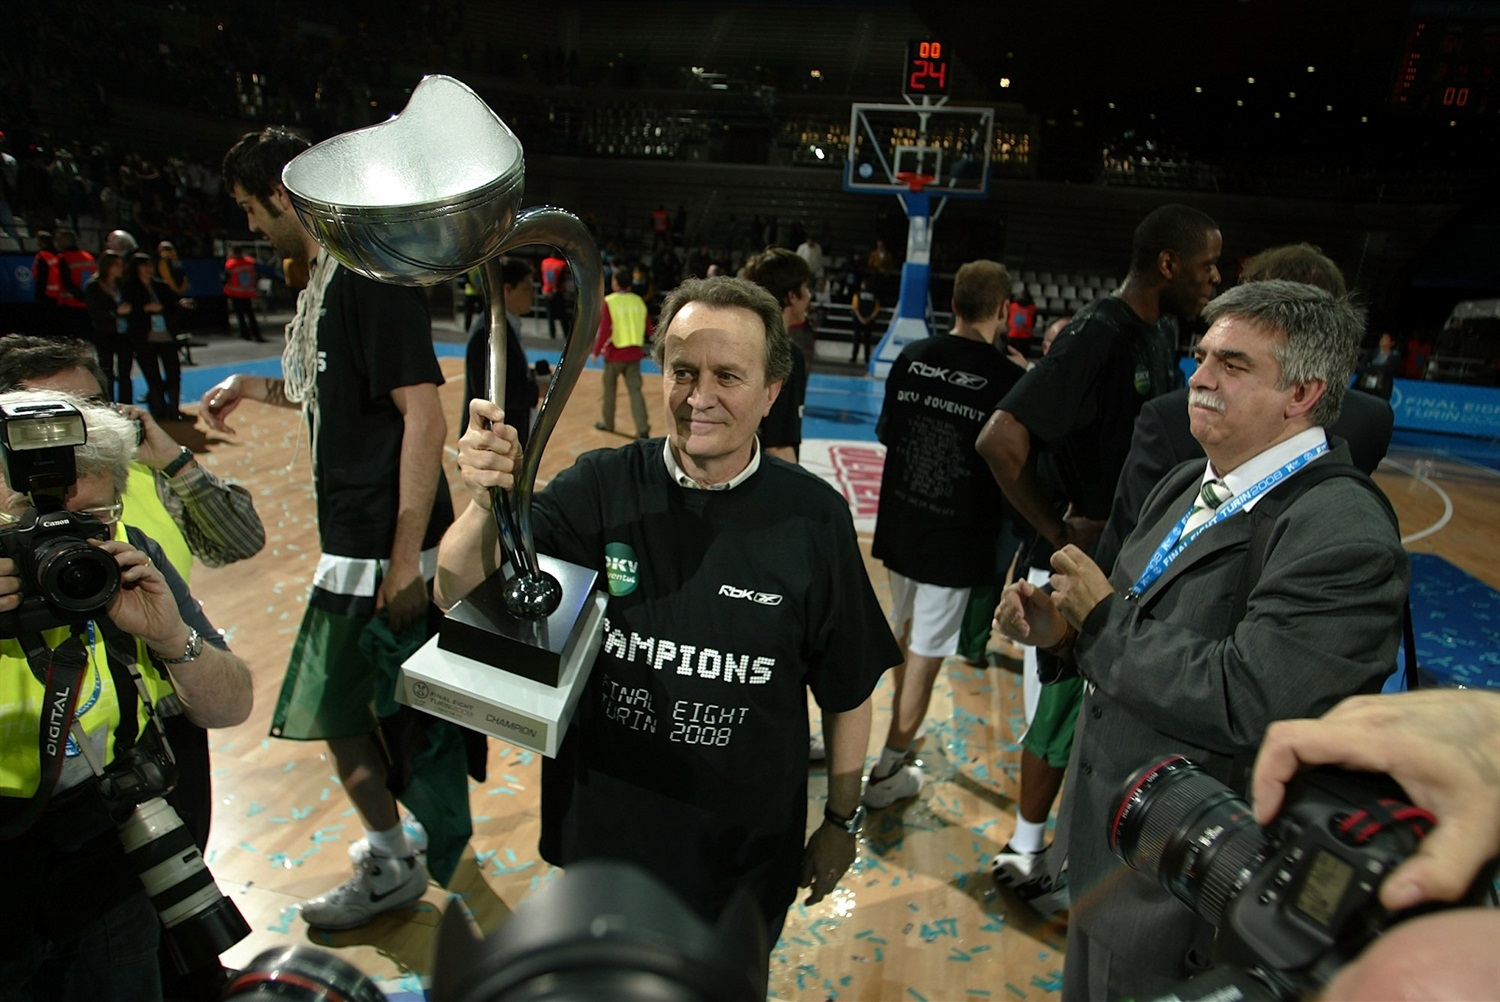 Aito Garcia Reneses - DKV Joventut Champ - Final Eight Turin 2008 - EC07